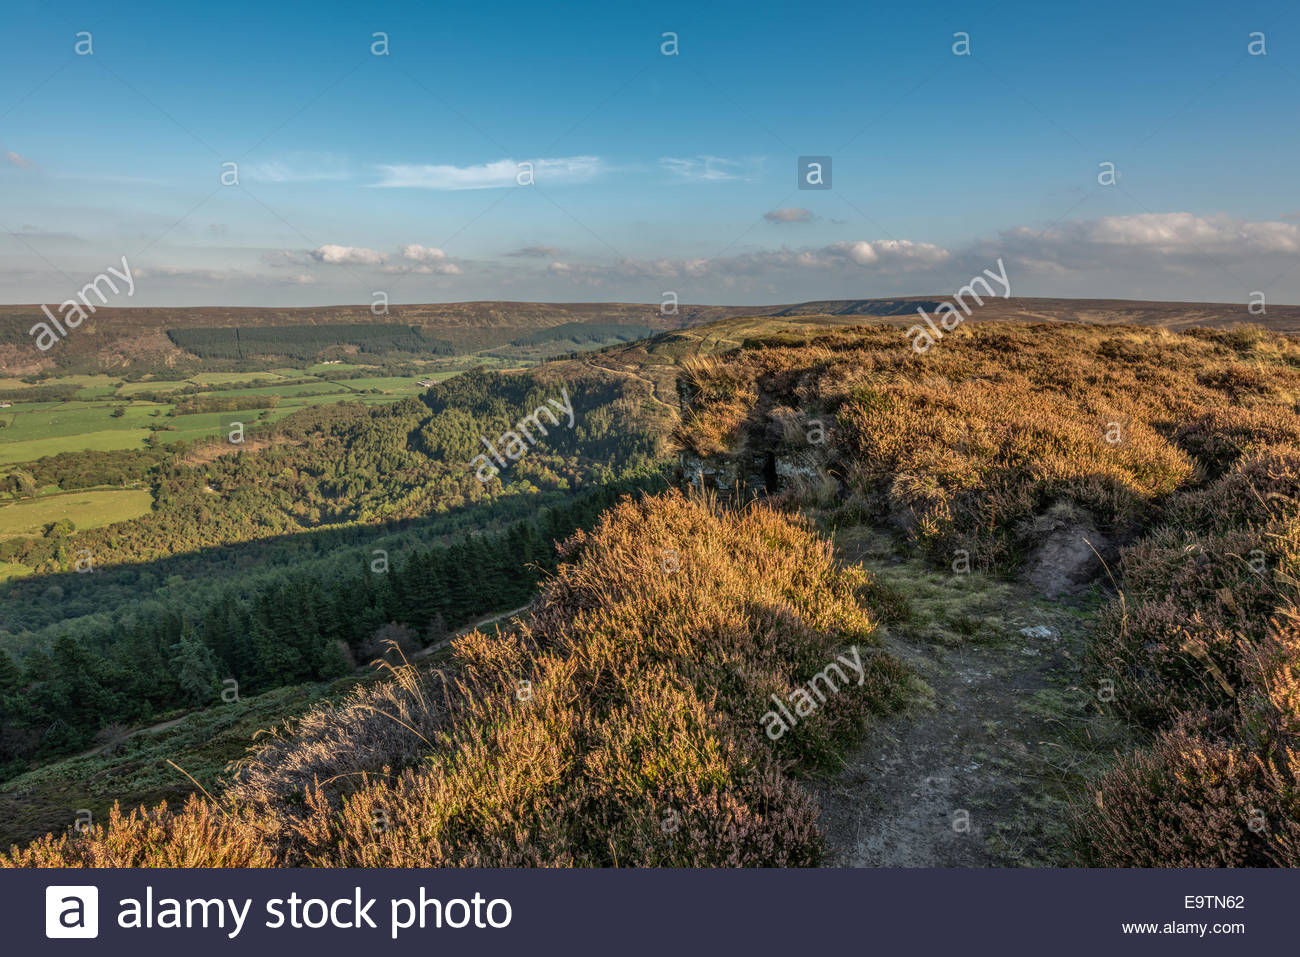 A view on Hasty Bank near Great Broughton village in North Yorkshire looking across tree covered hills and moorland. - Stock Image